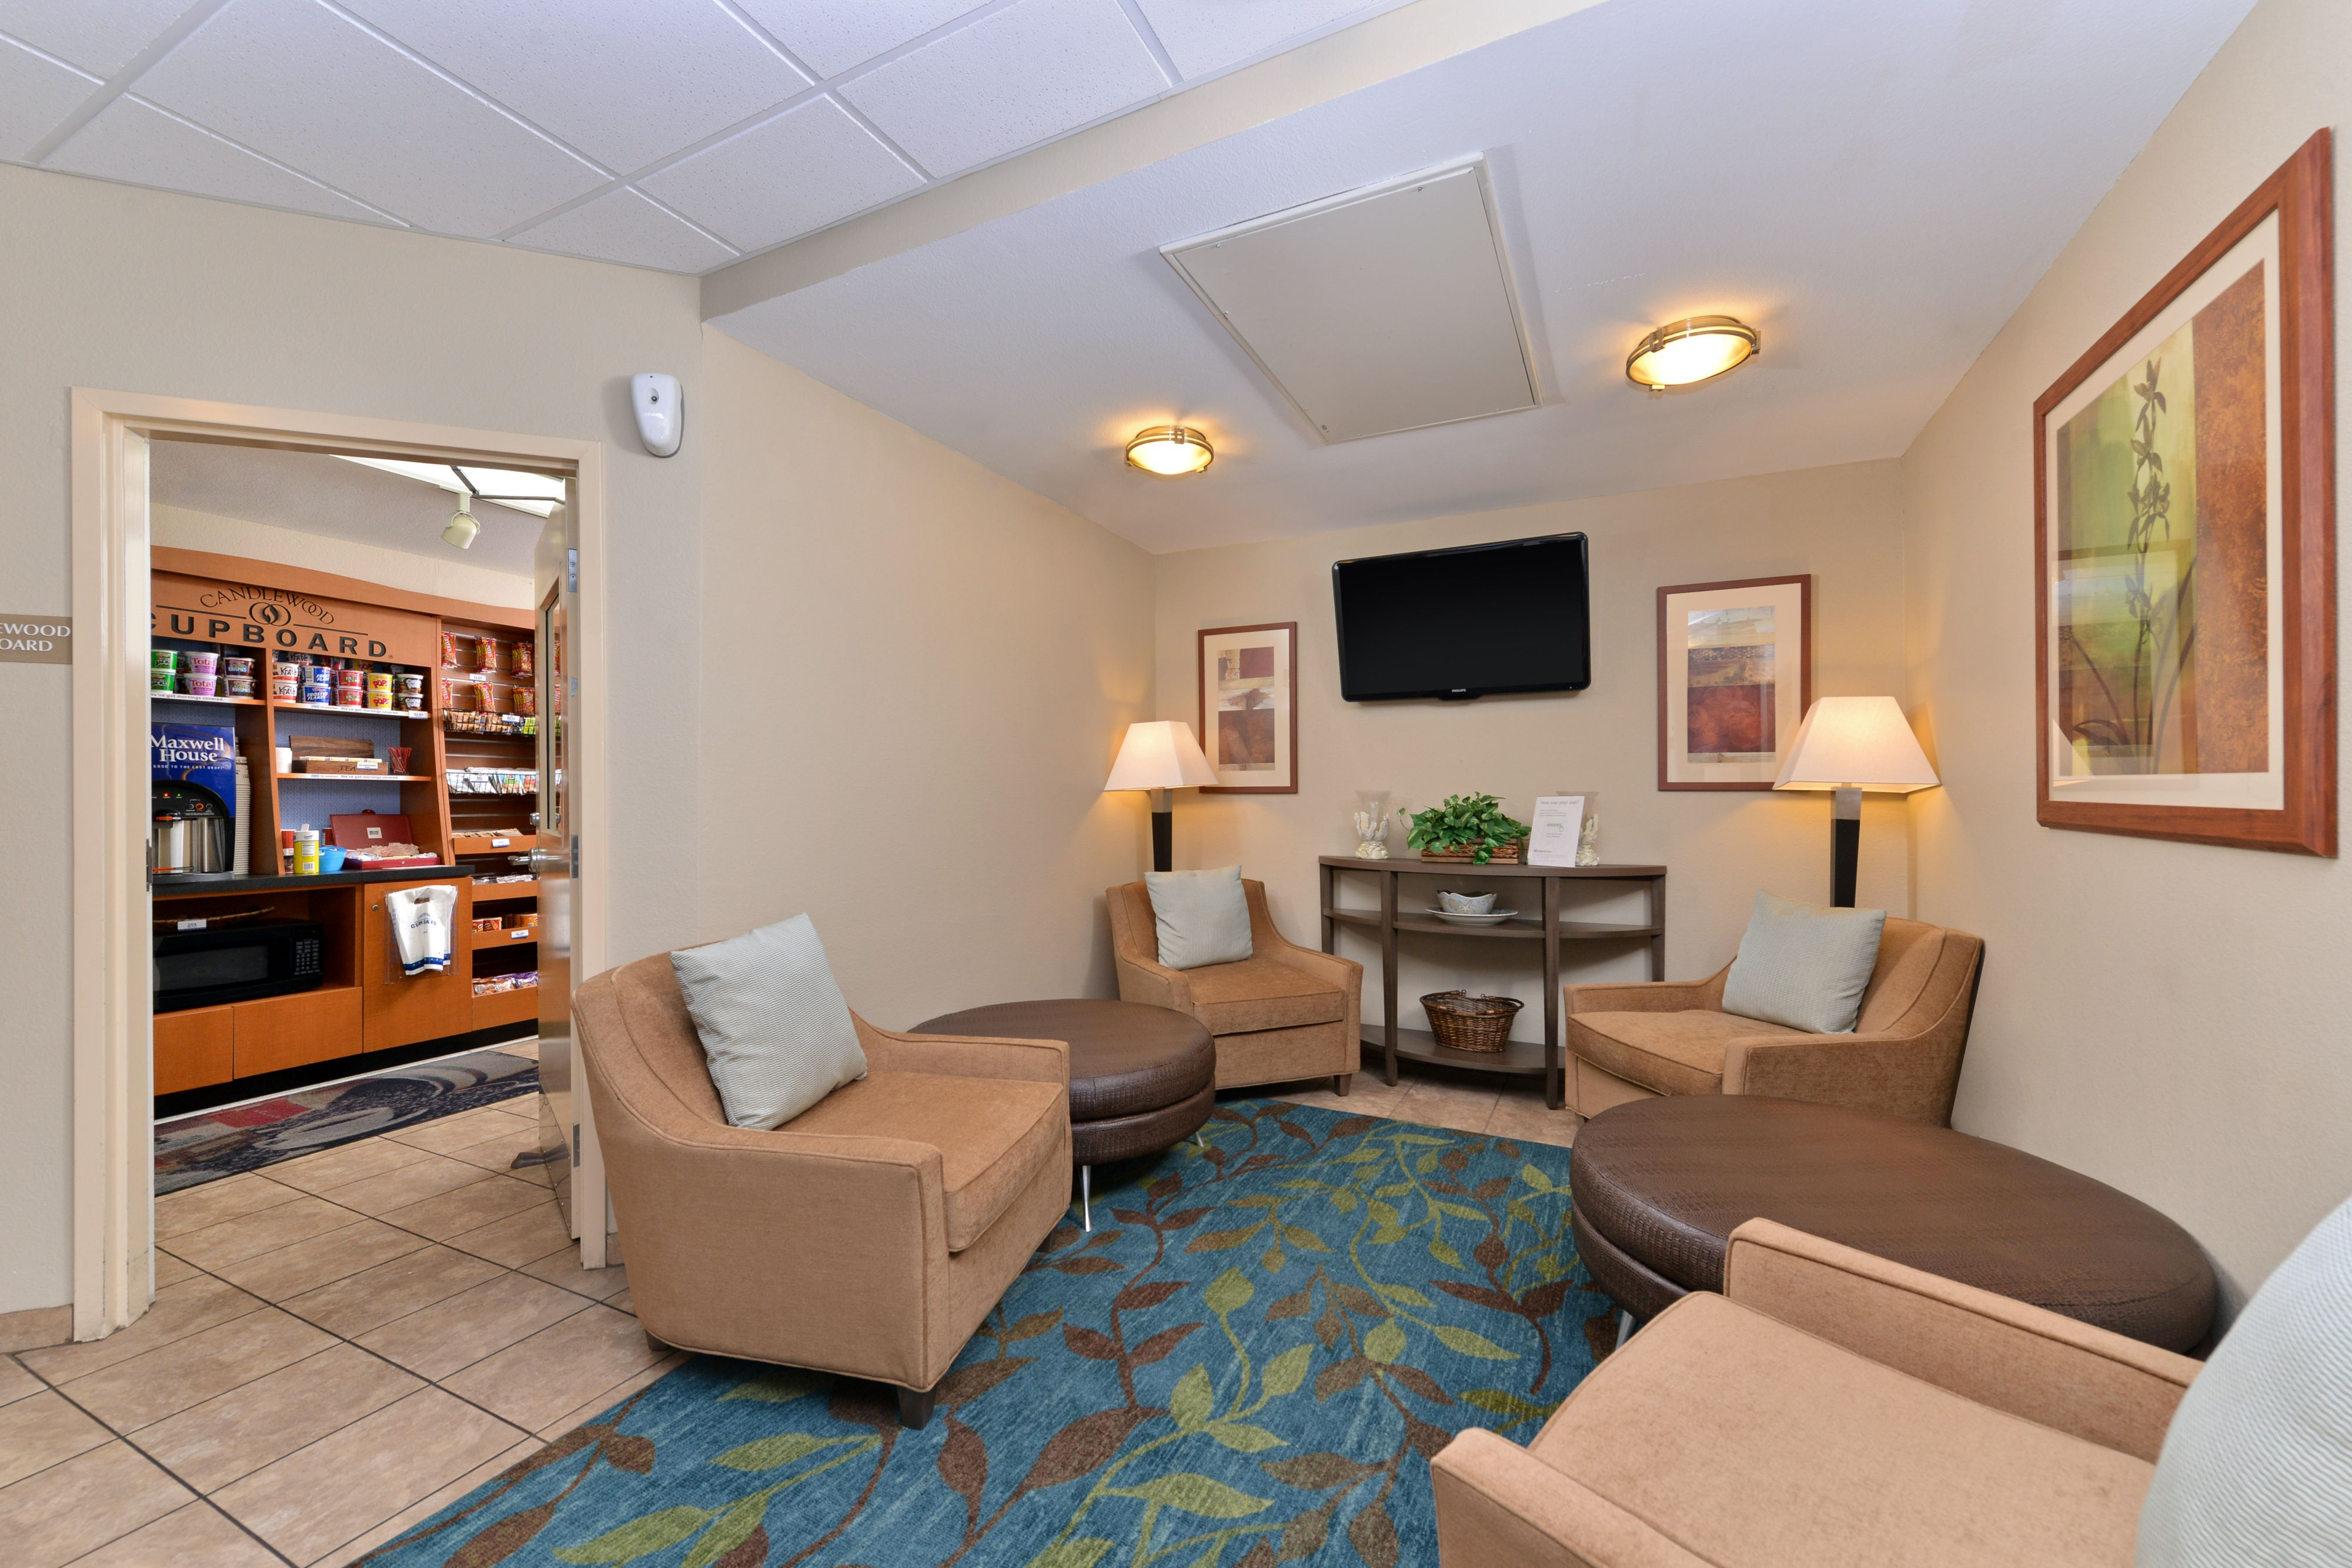 Candlewood Suites Bluffton-Hilton Head image 7